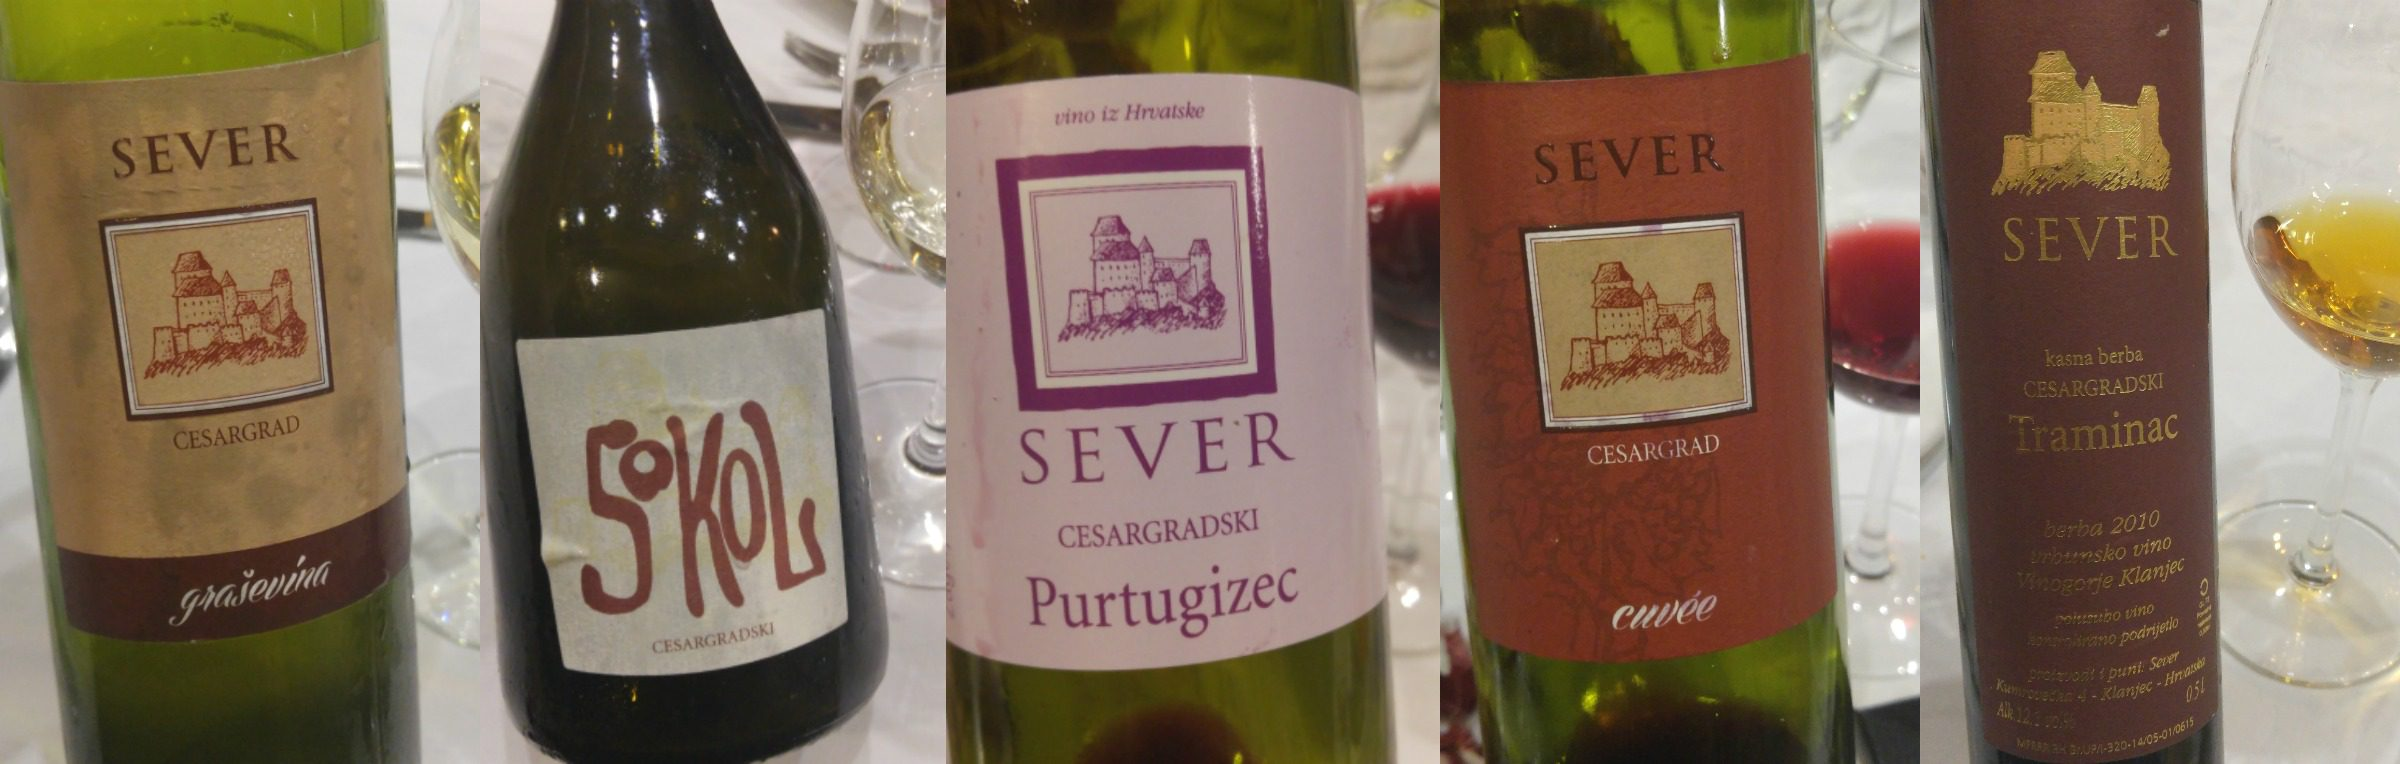 THE SEVER WINERY wine tasting